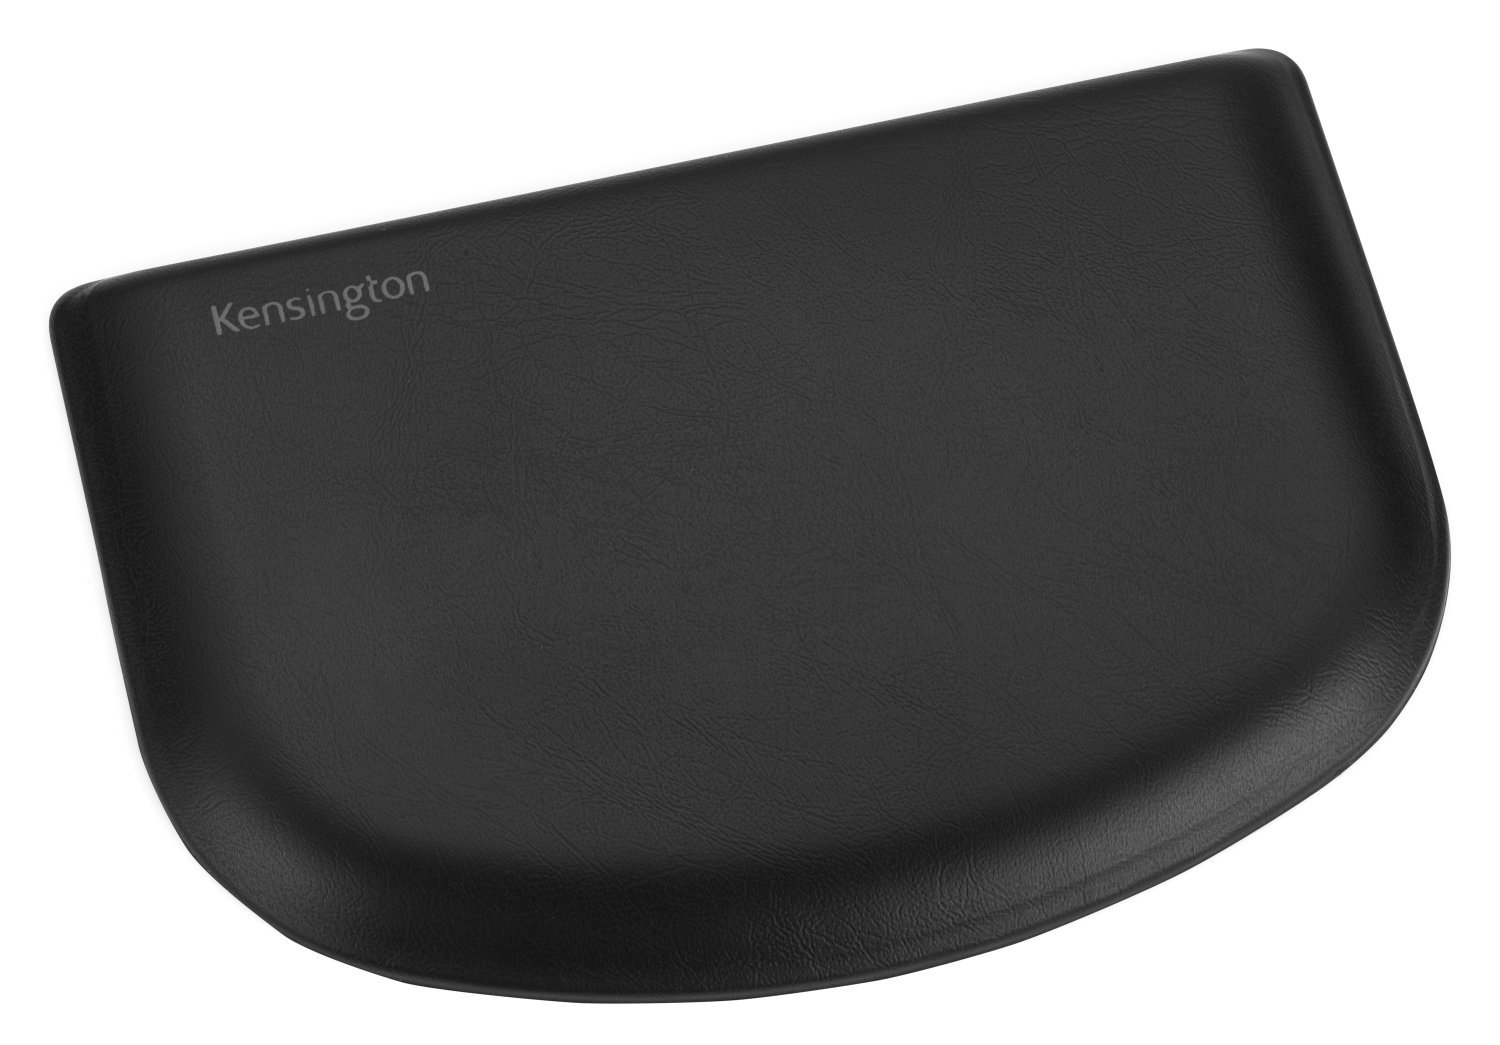 Kensington ErgoSoft Wrist Rest for Slim Mouse/Trackpad, Black (K52803WW)